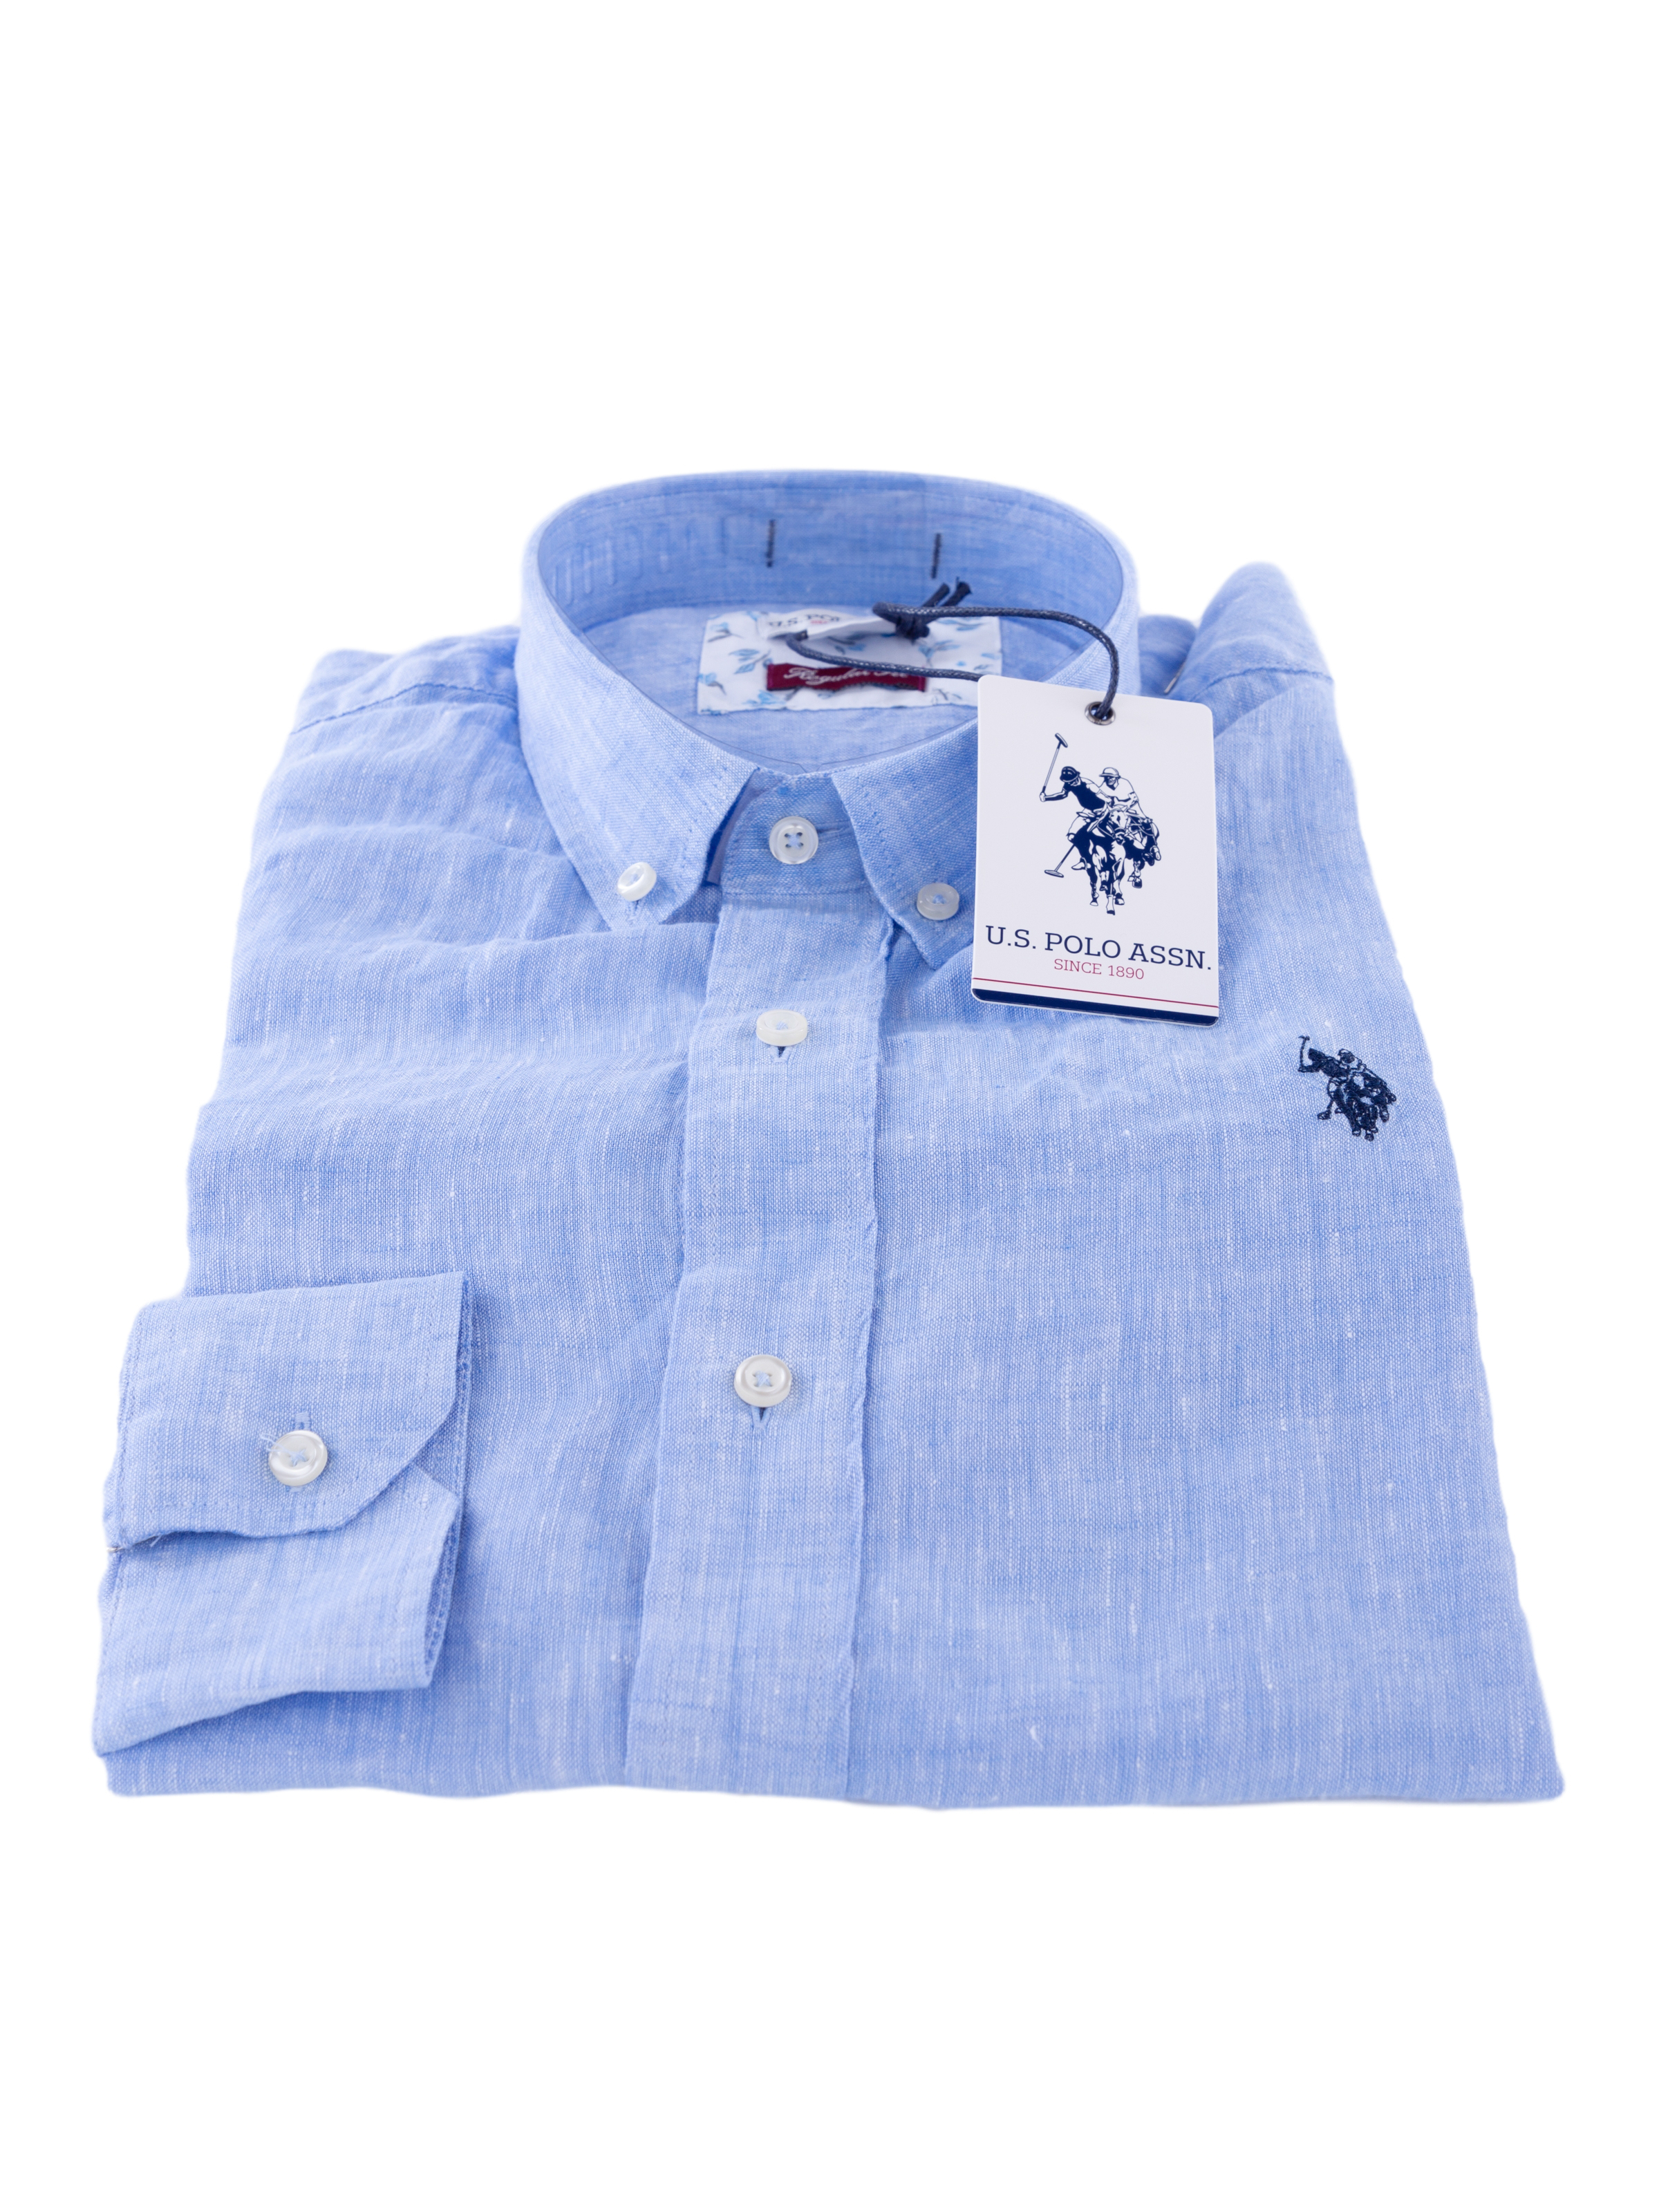 U.S.Polo Assn. Zam Shirt RF-New BD 58574 50816